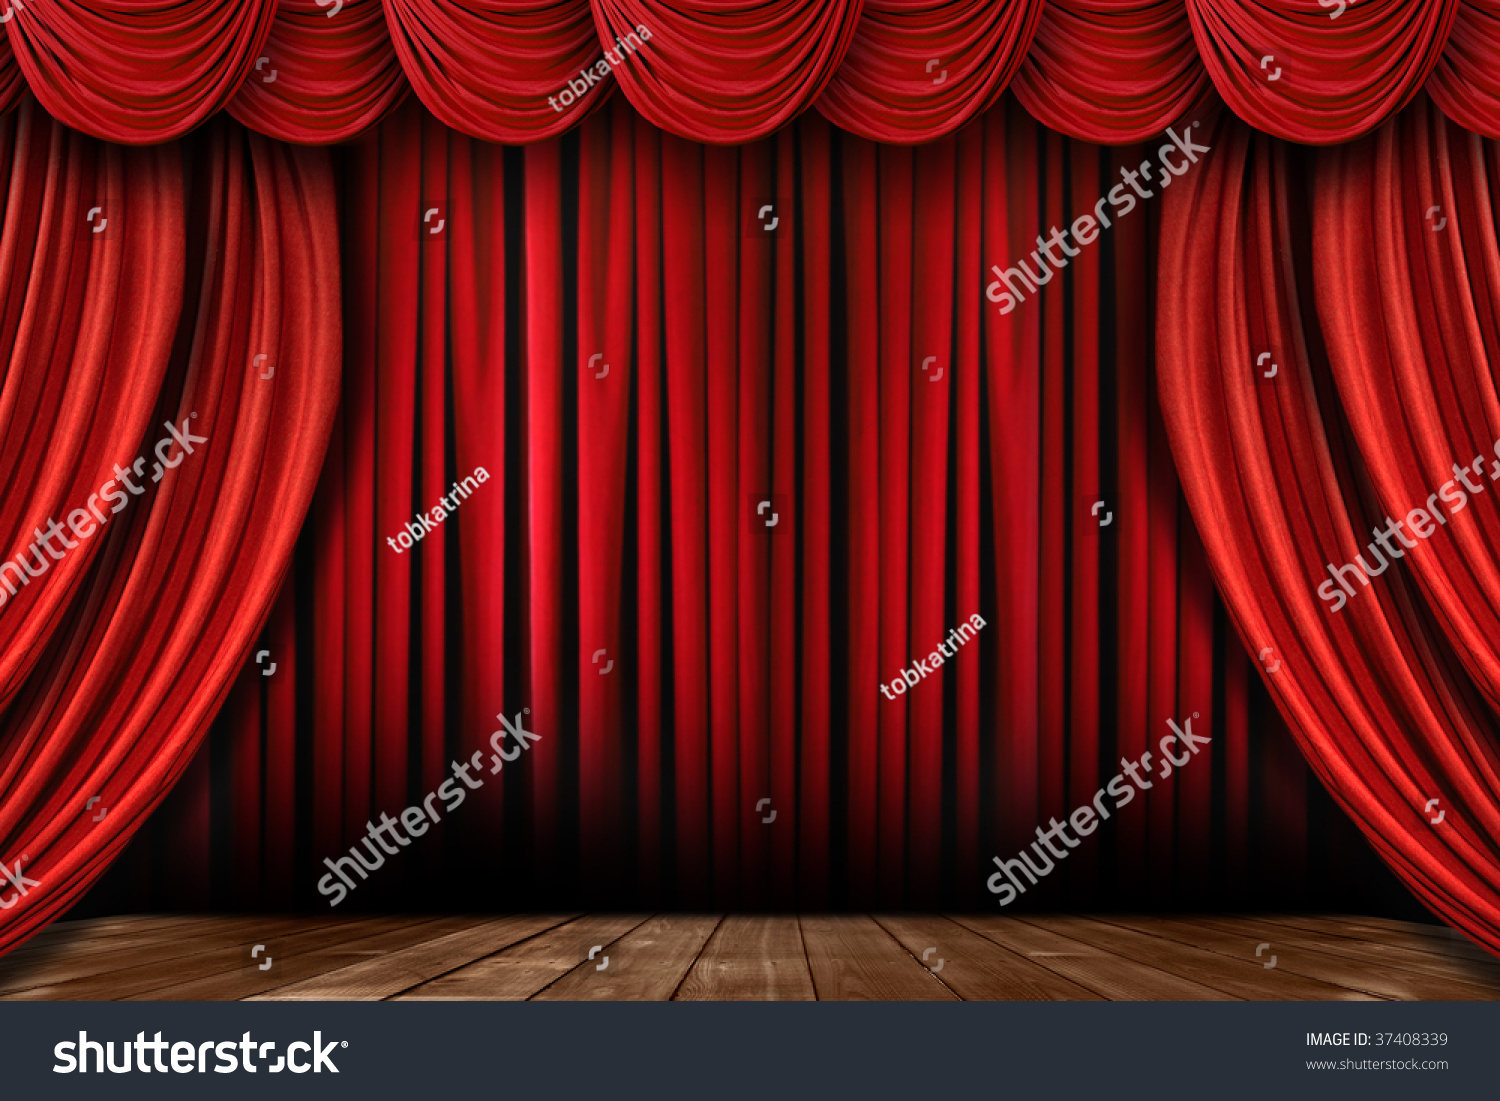 Stock photo dramatic red old fashioned elegant theater stage stock - Dramatic Bright Red Stage Drapes With Many Swags Preview Save To A Lightbox Find Similar Images Share